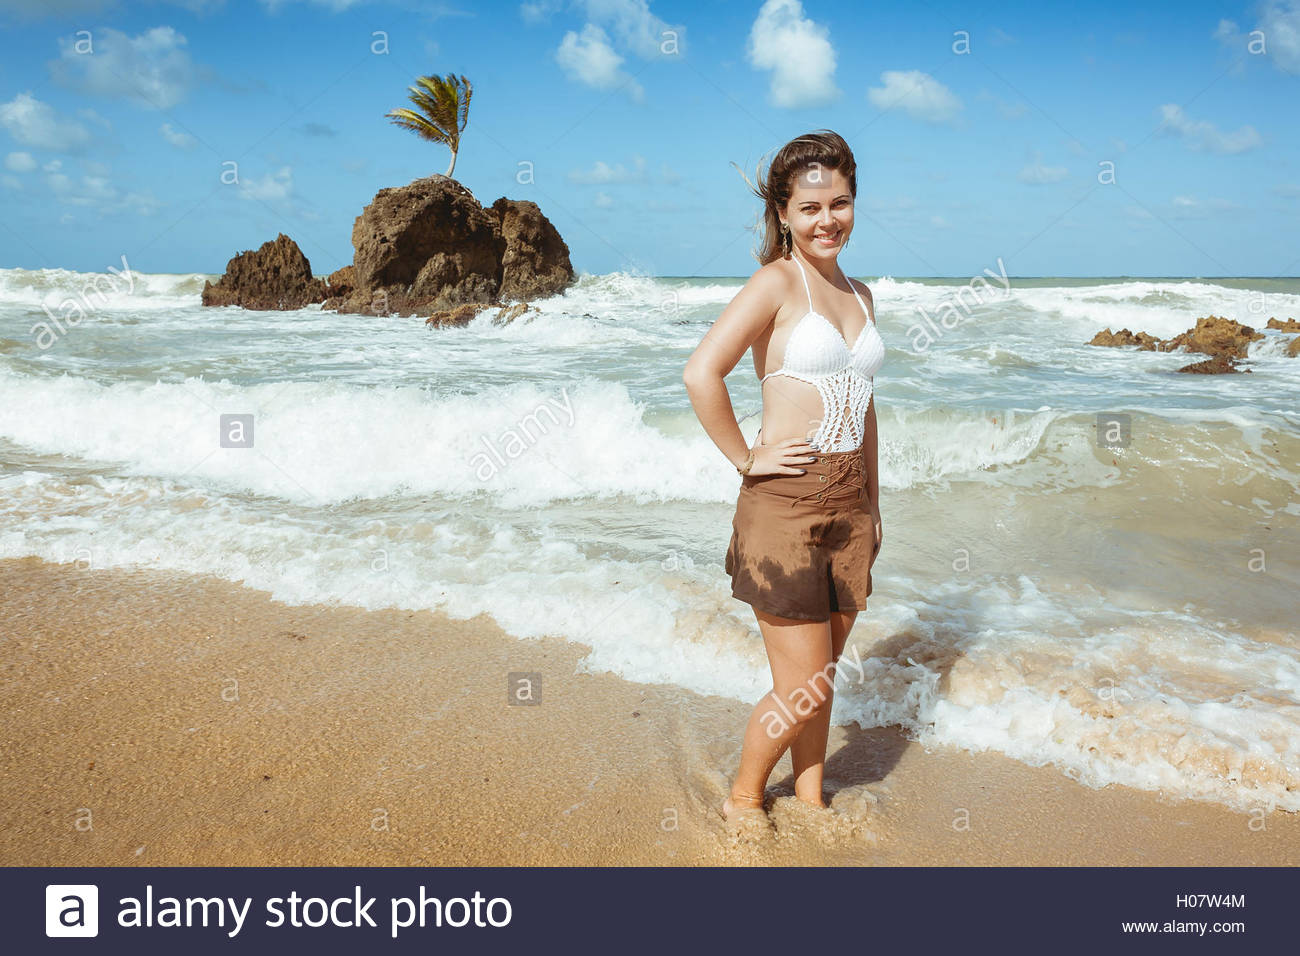 Woman in Tambaba Beach in Brazil, known for allowing the practice of